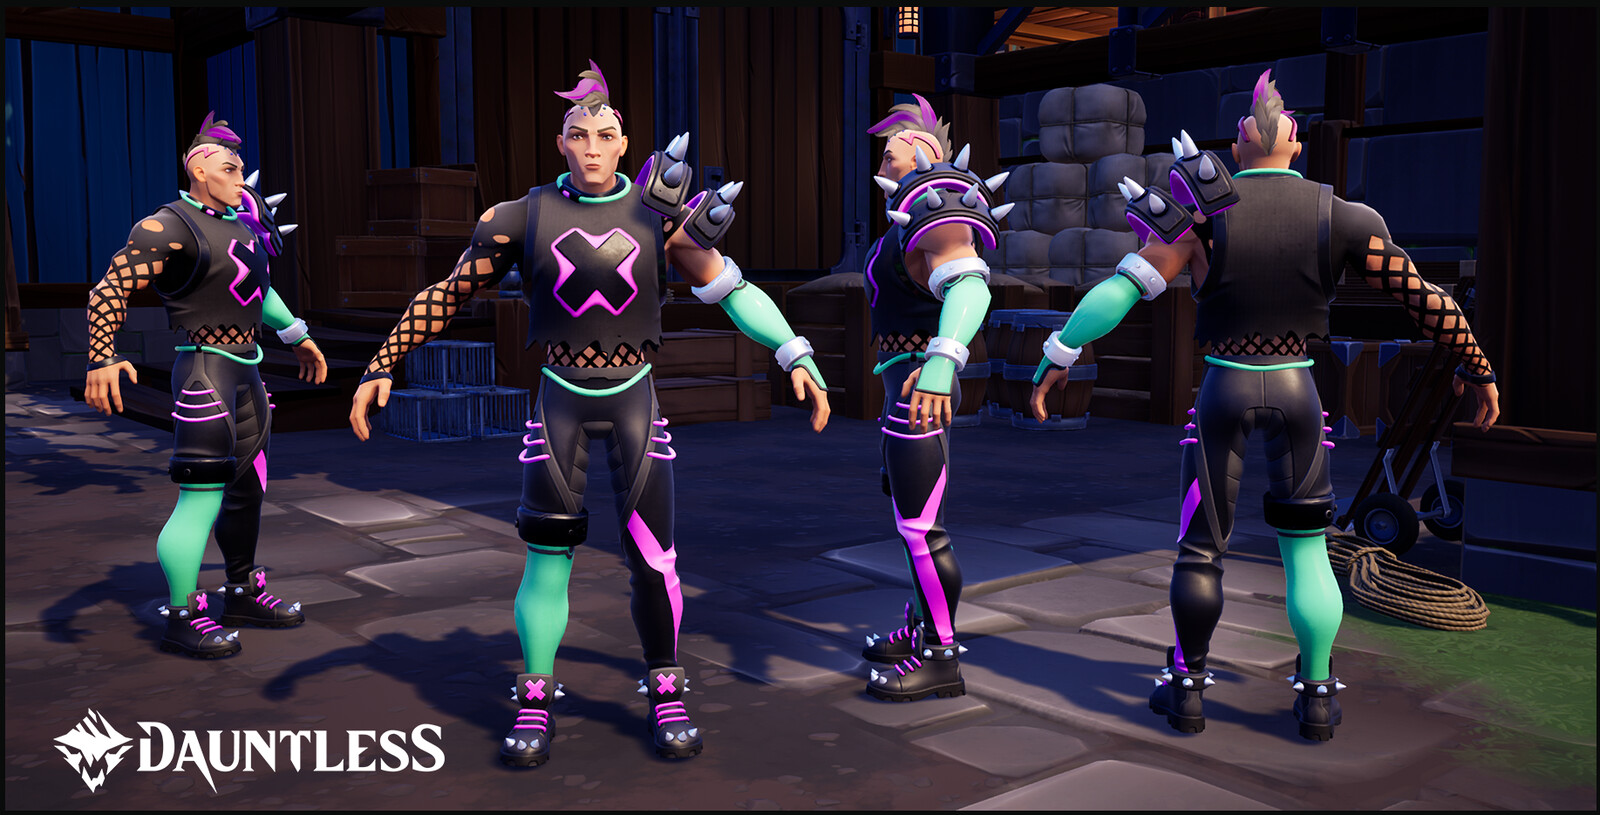 Punk outfit. LVL 1 Hunt Pass reward for the season of Aetherpunk.